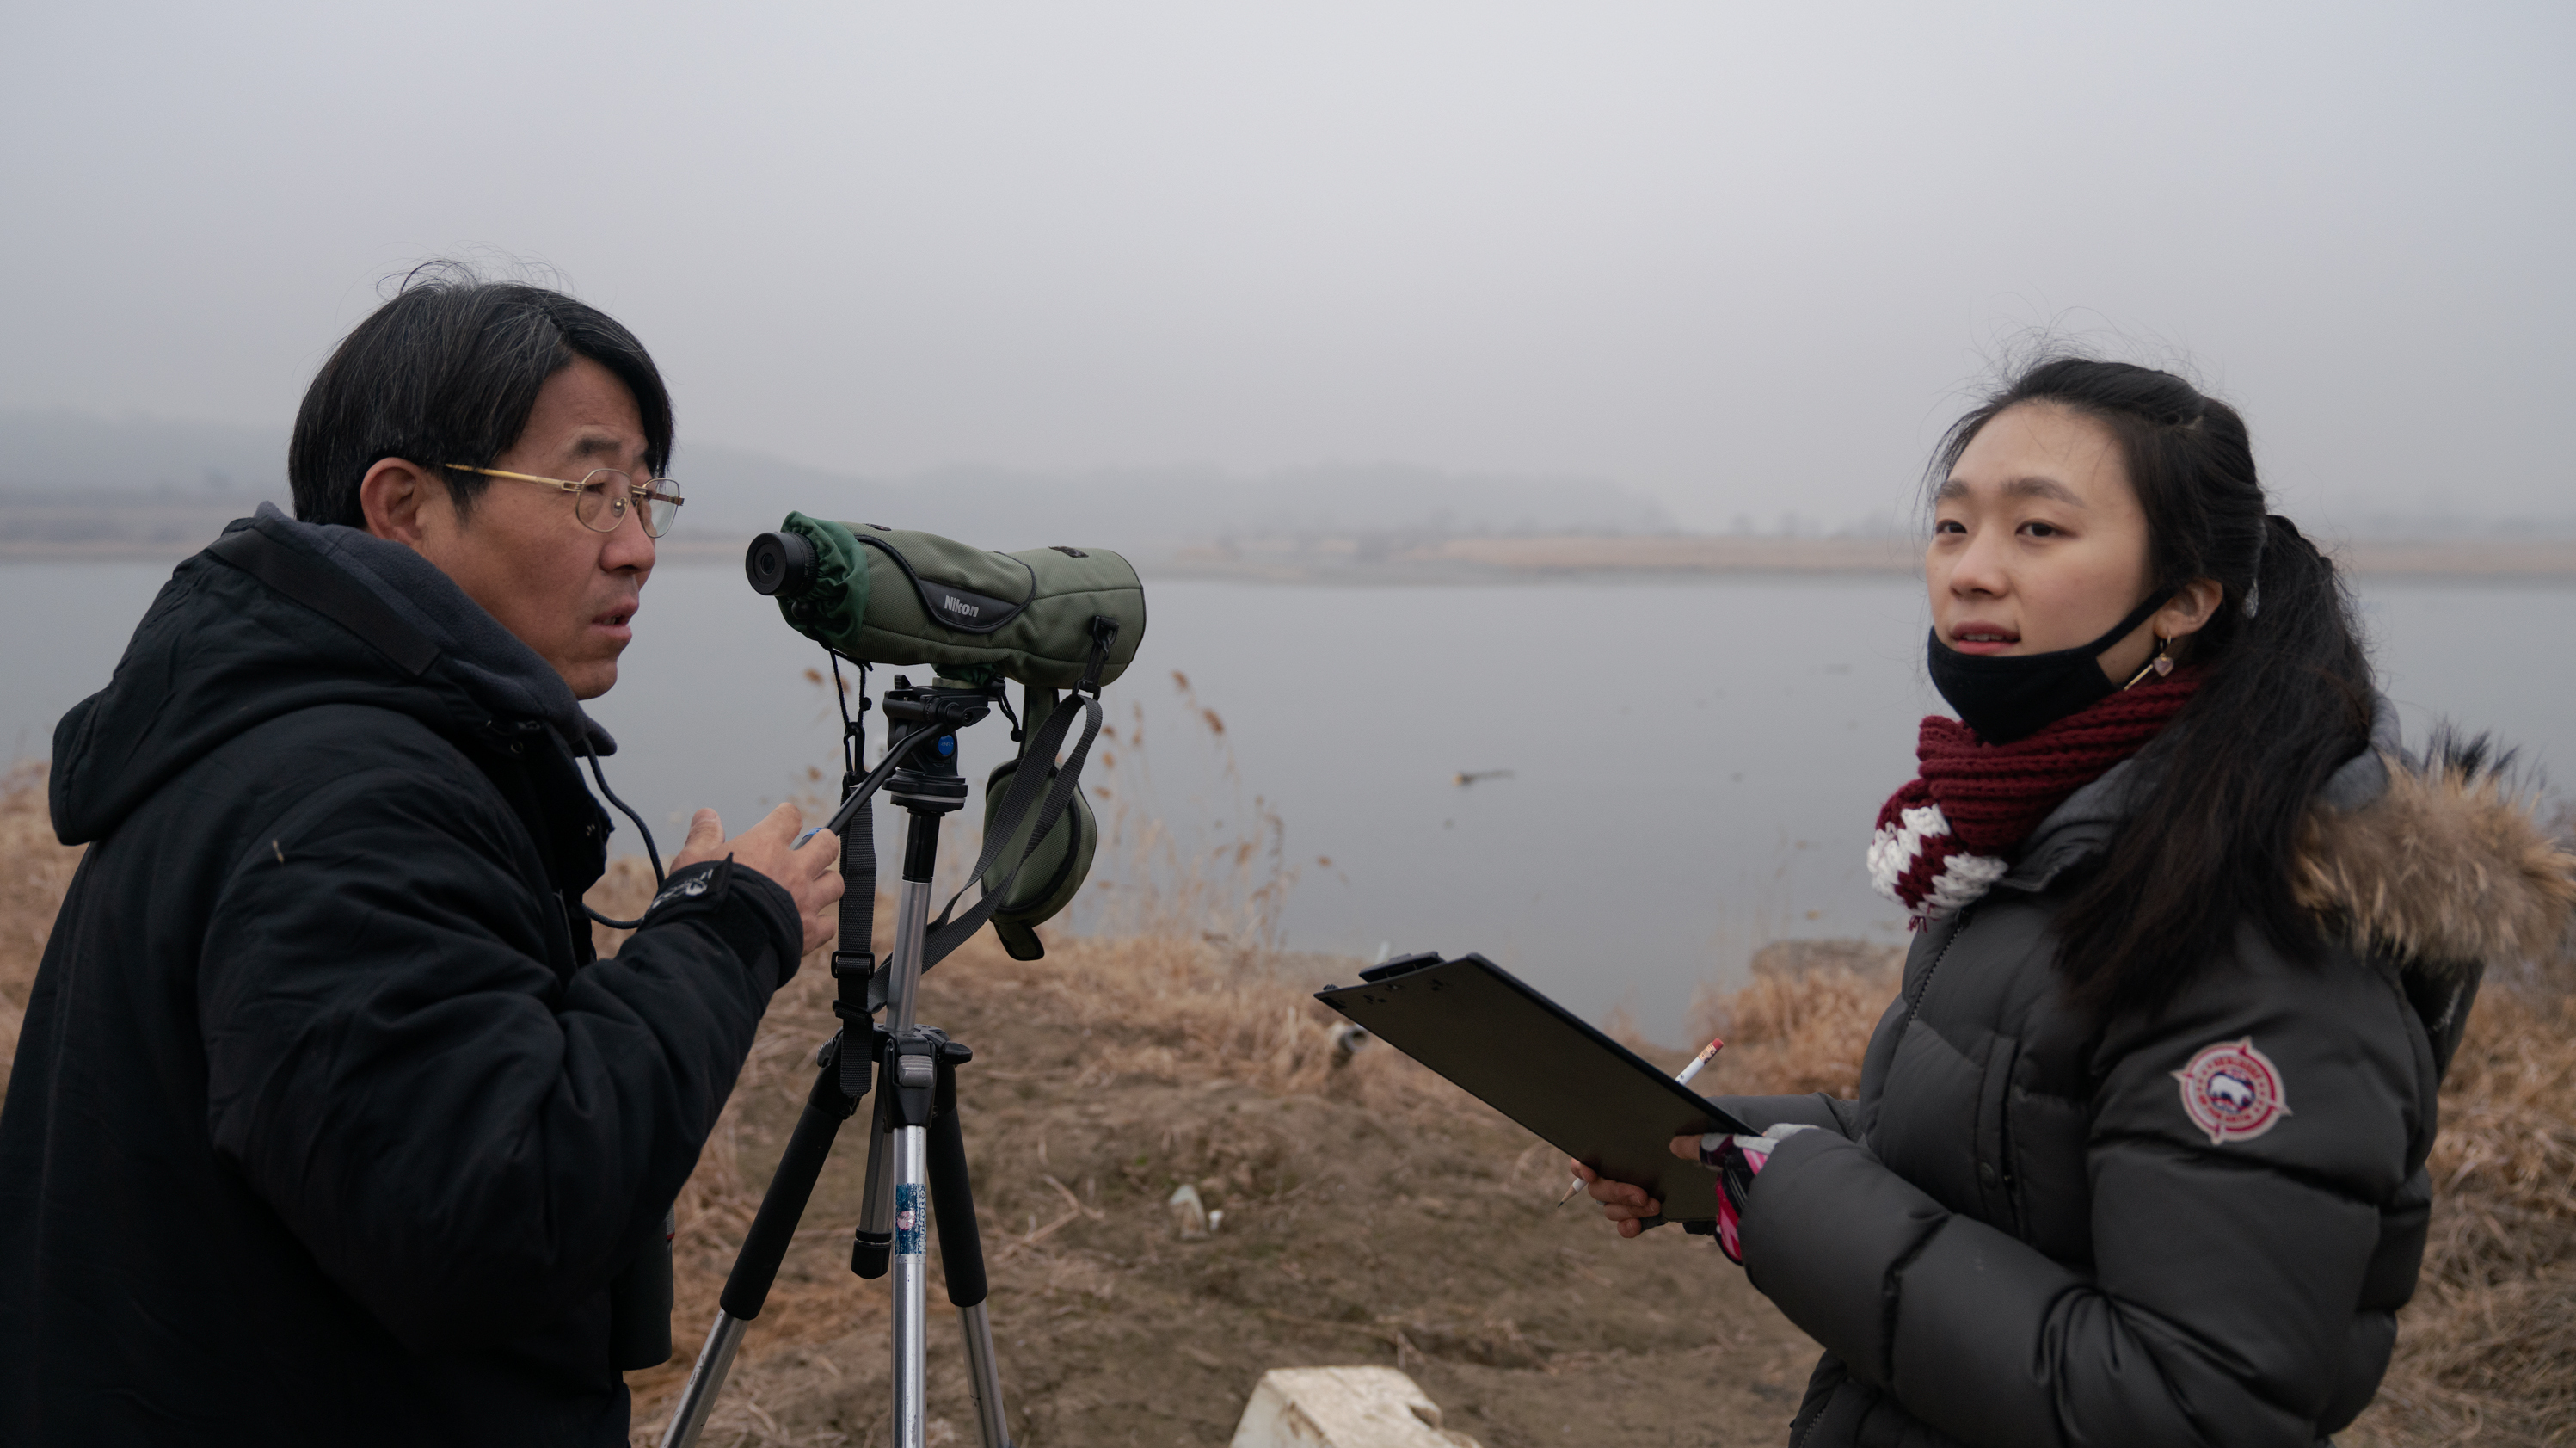 Kim Seung-ho (left), the director of the DMZ Ecology Research Institute, counts birds of the DMZ with intern Pyo Gina.